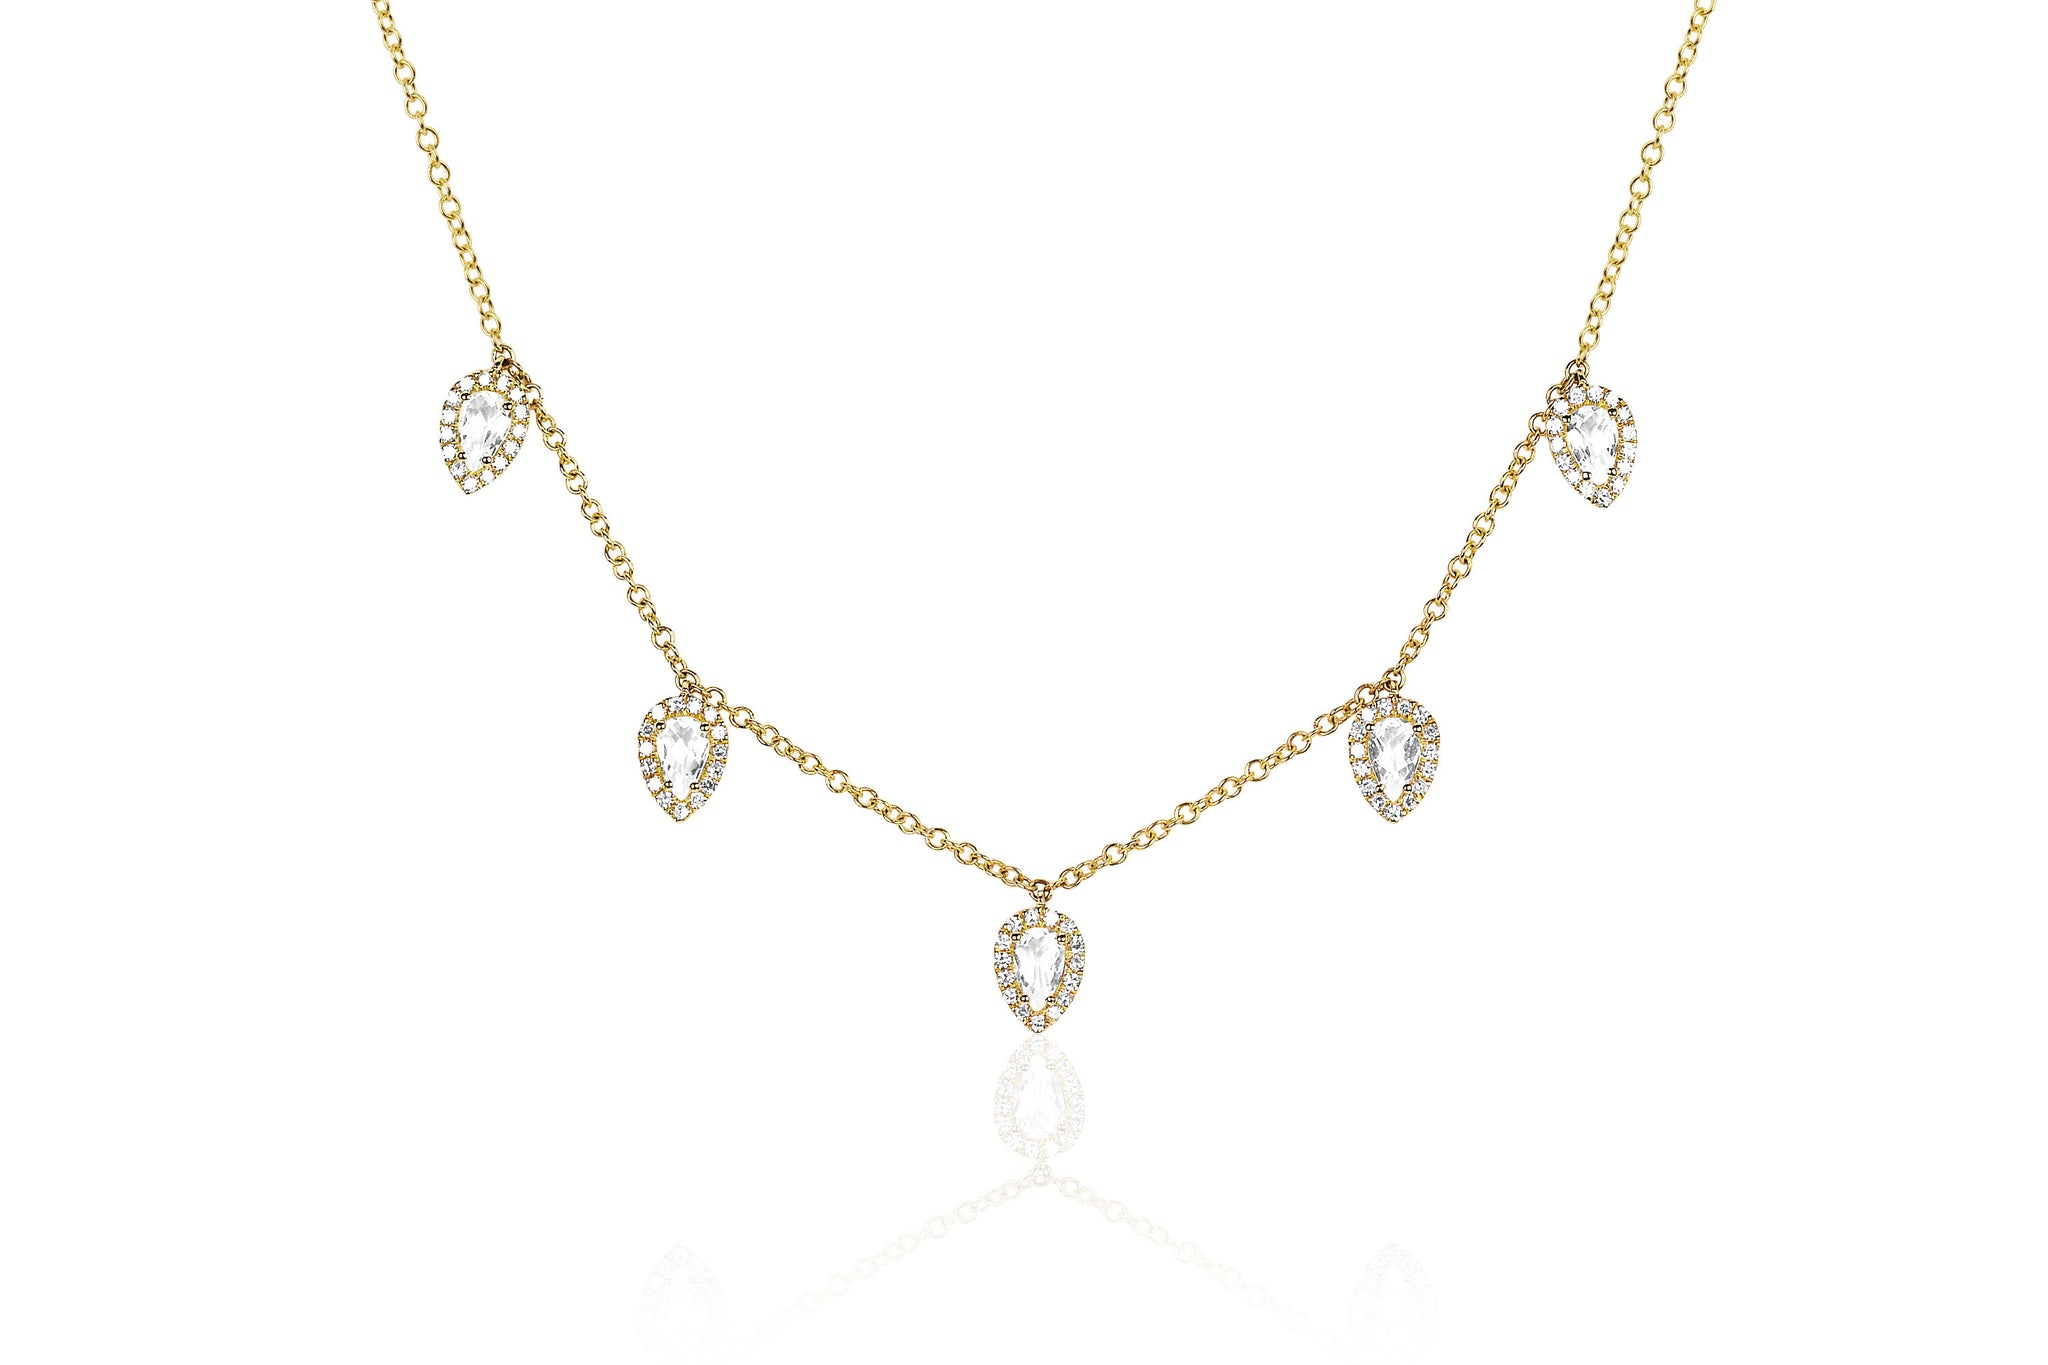 petite necklaces main products and pdp pendant necklace chains white women topaz albion diamonds with